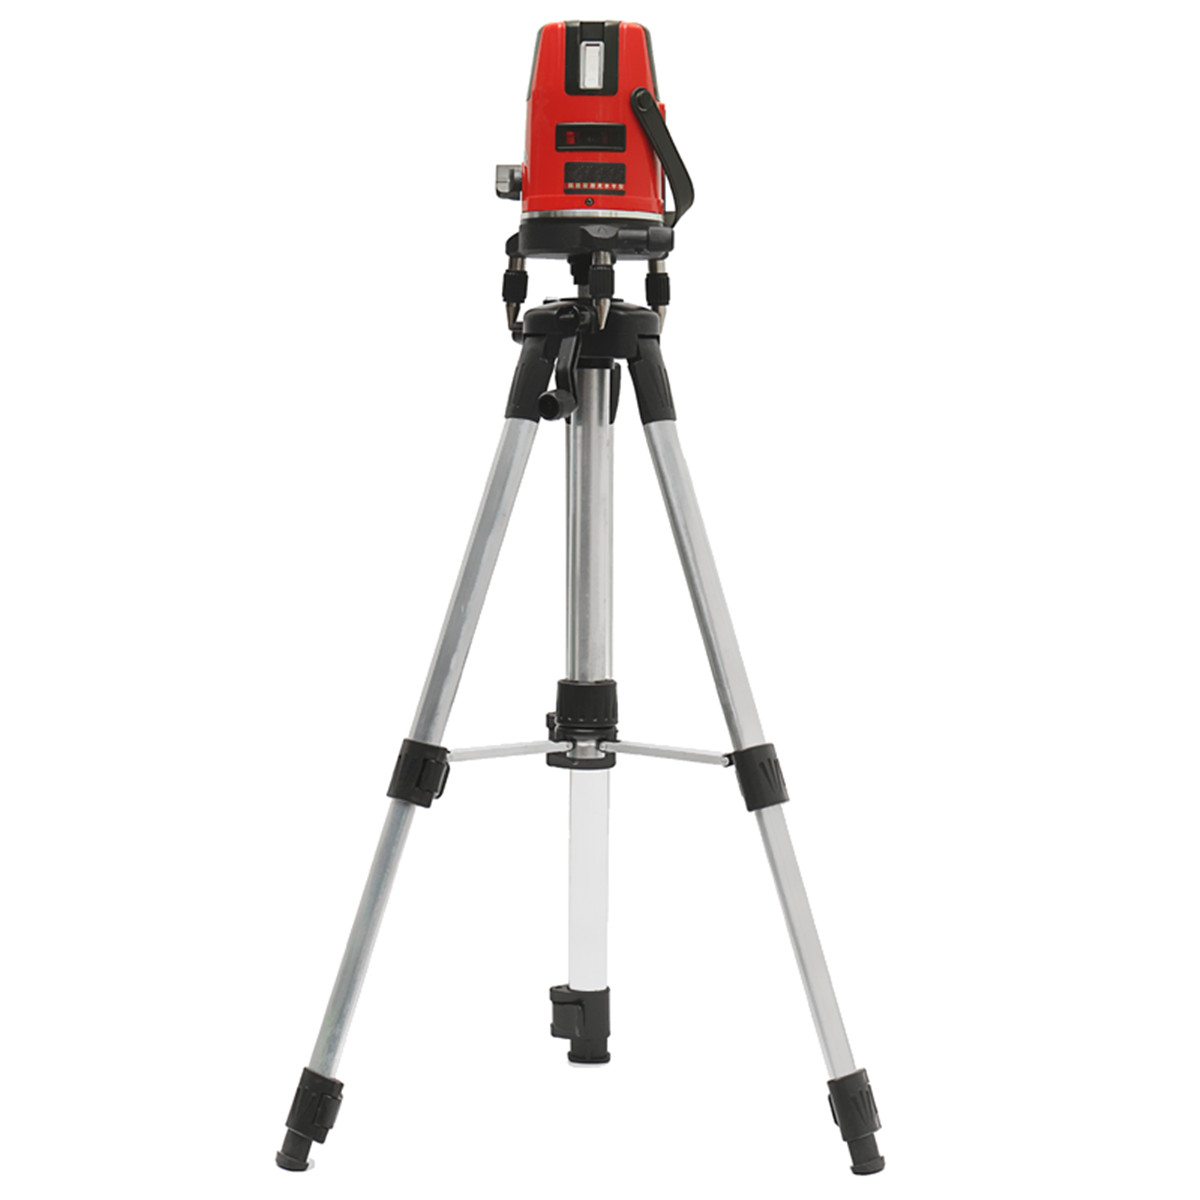 5 Lines 6 Points Professional Waterproof Laser Level Red Automatic Level 360° Rotating Outdoor Mode + Tripod